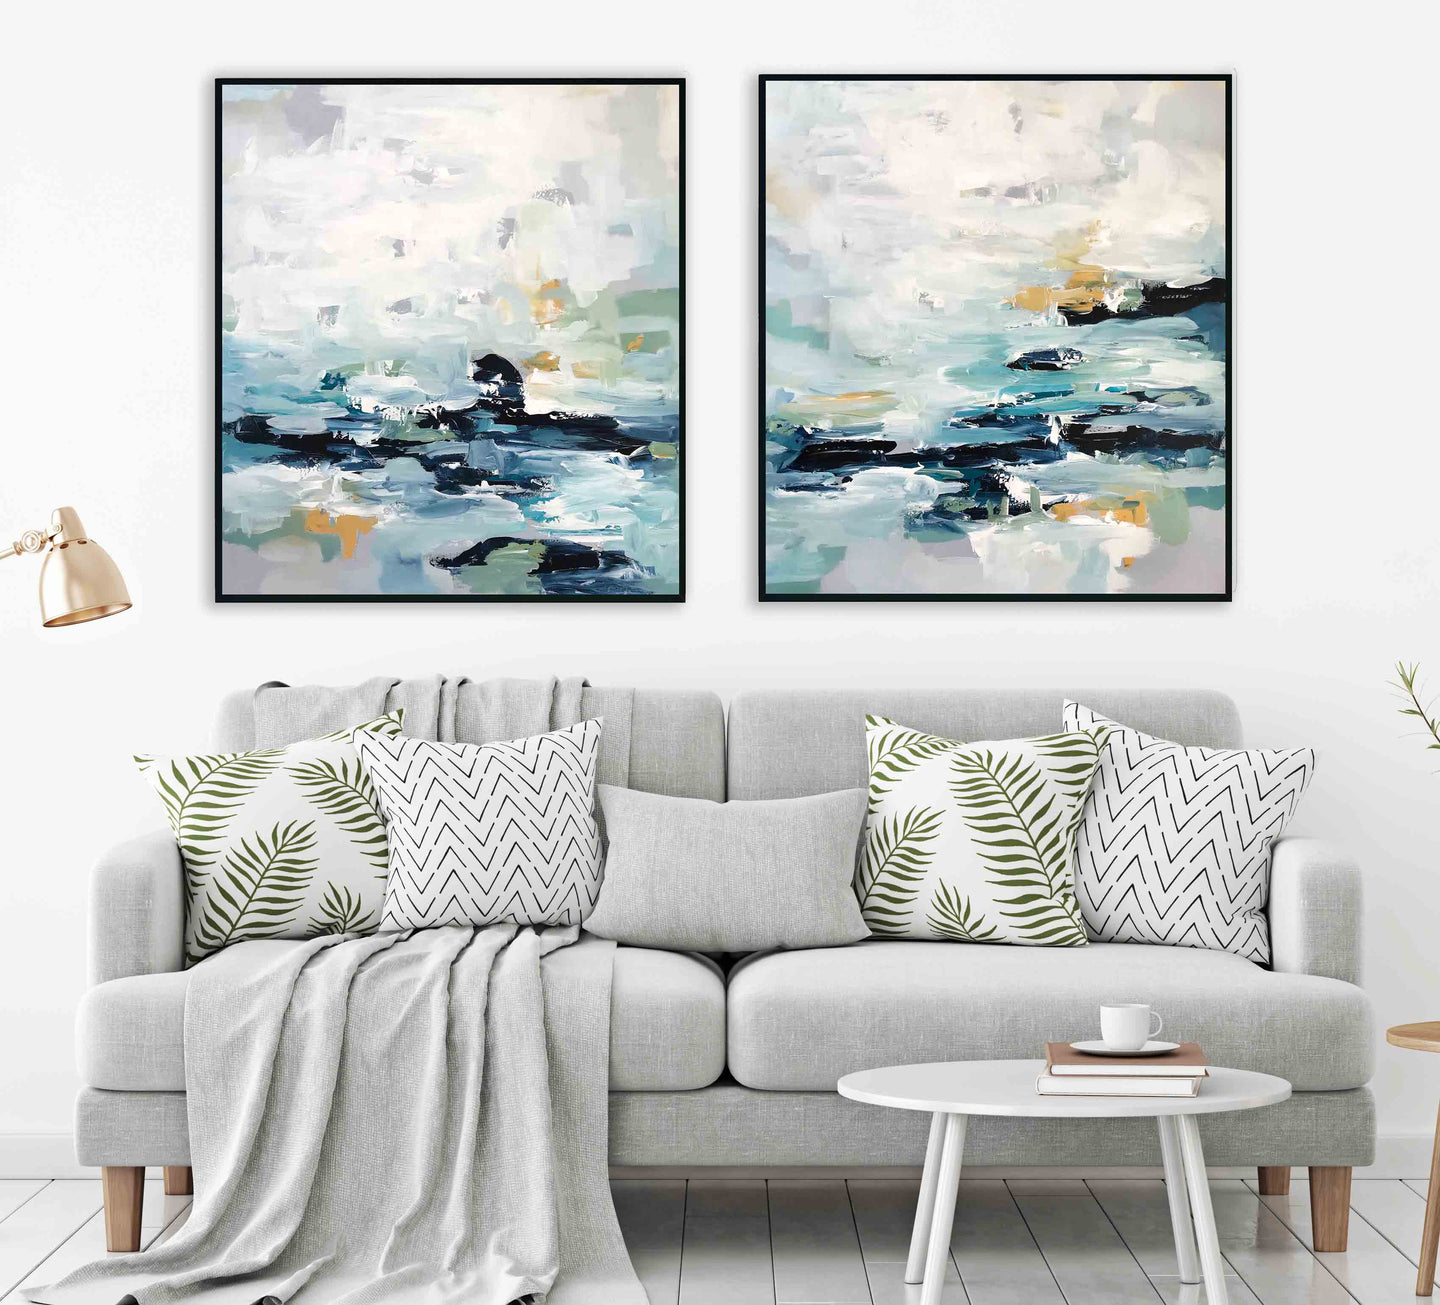 Epiphany X - Diptych 180x102 cm - Original Painting